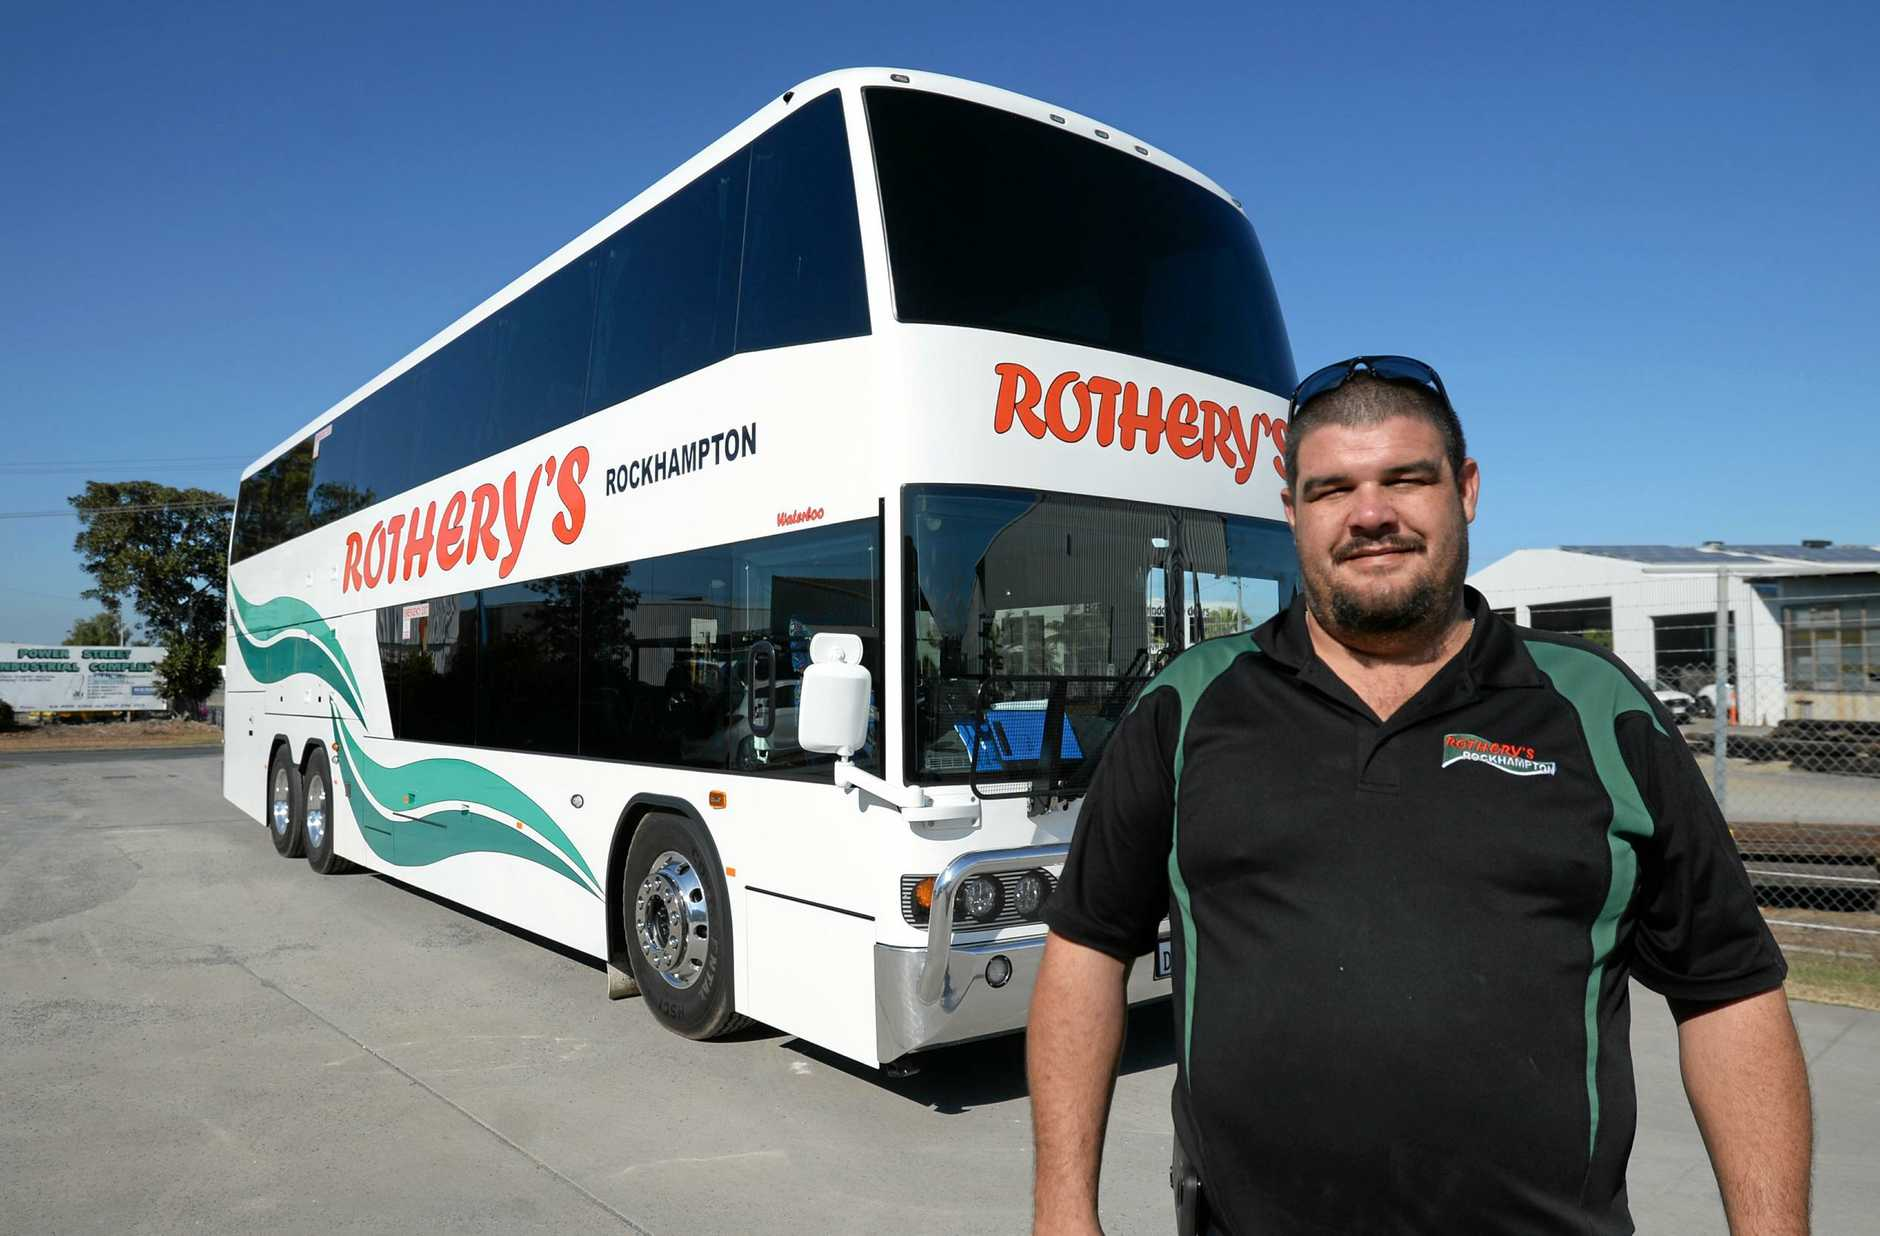 Kurt Rothery with the new Denning double decker 73 seat coach.